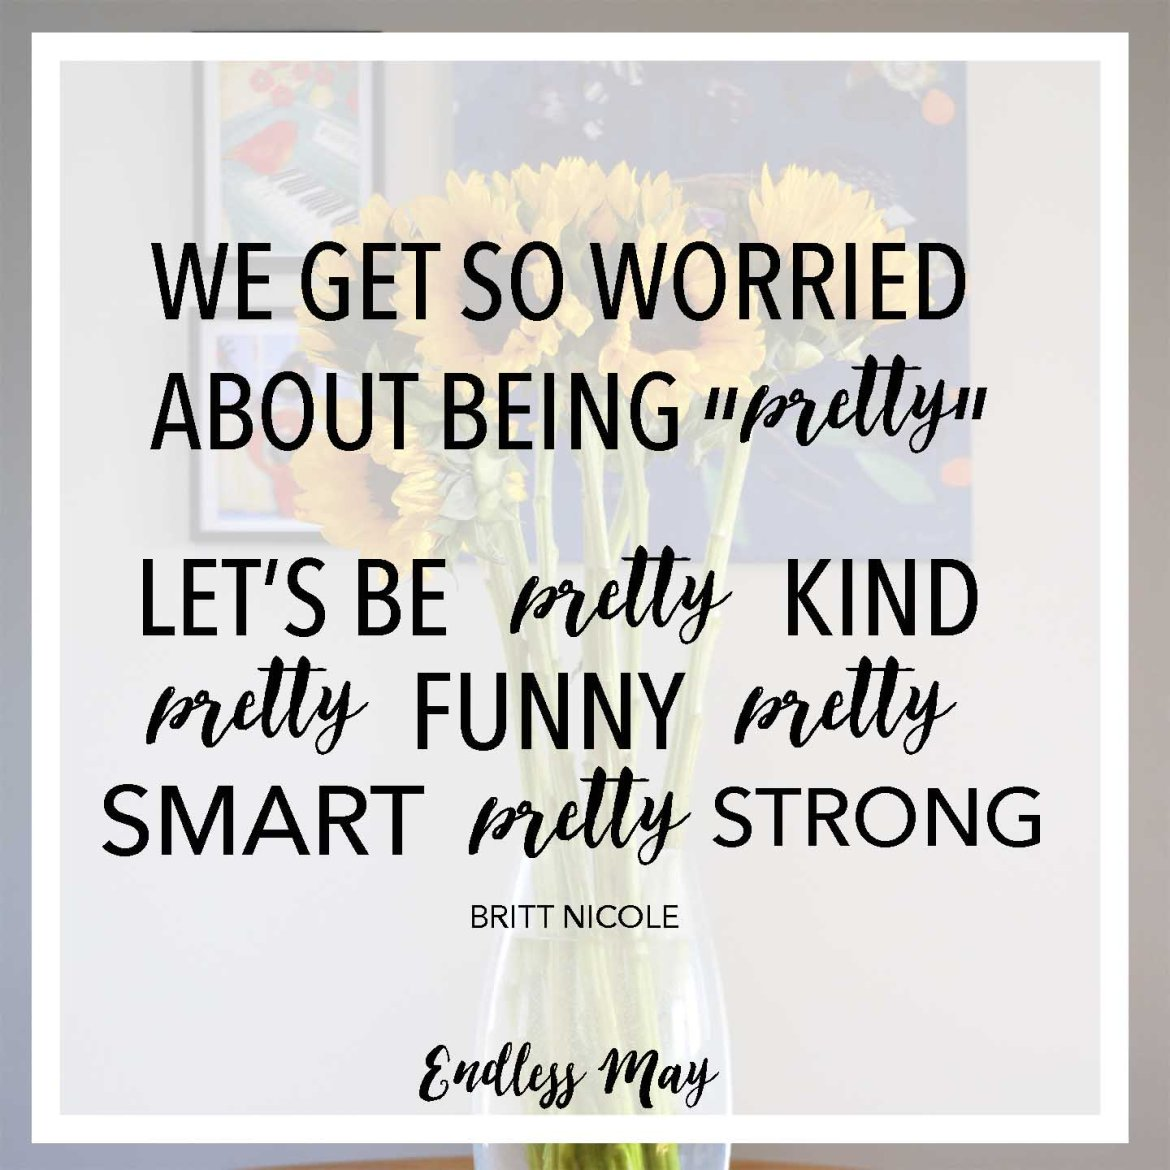 """We get so worried about being pretty. Let's be pretty kind, pretty funny, pretty smart, pretty strong."" Remember to love yourself. You are worth more than a number on a scale. You are brilliant."